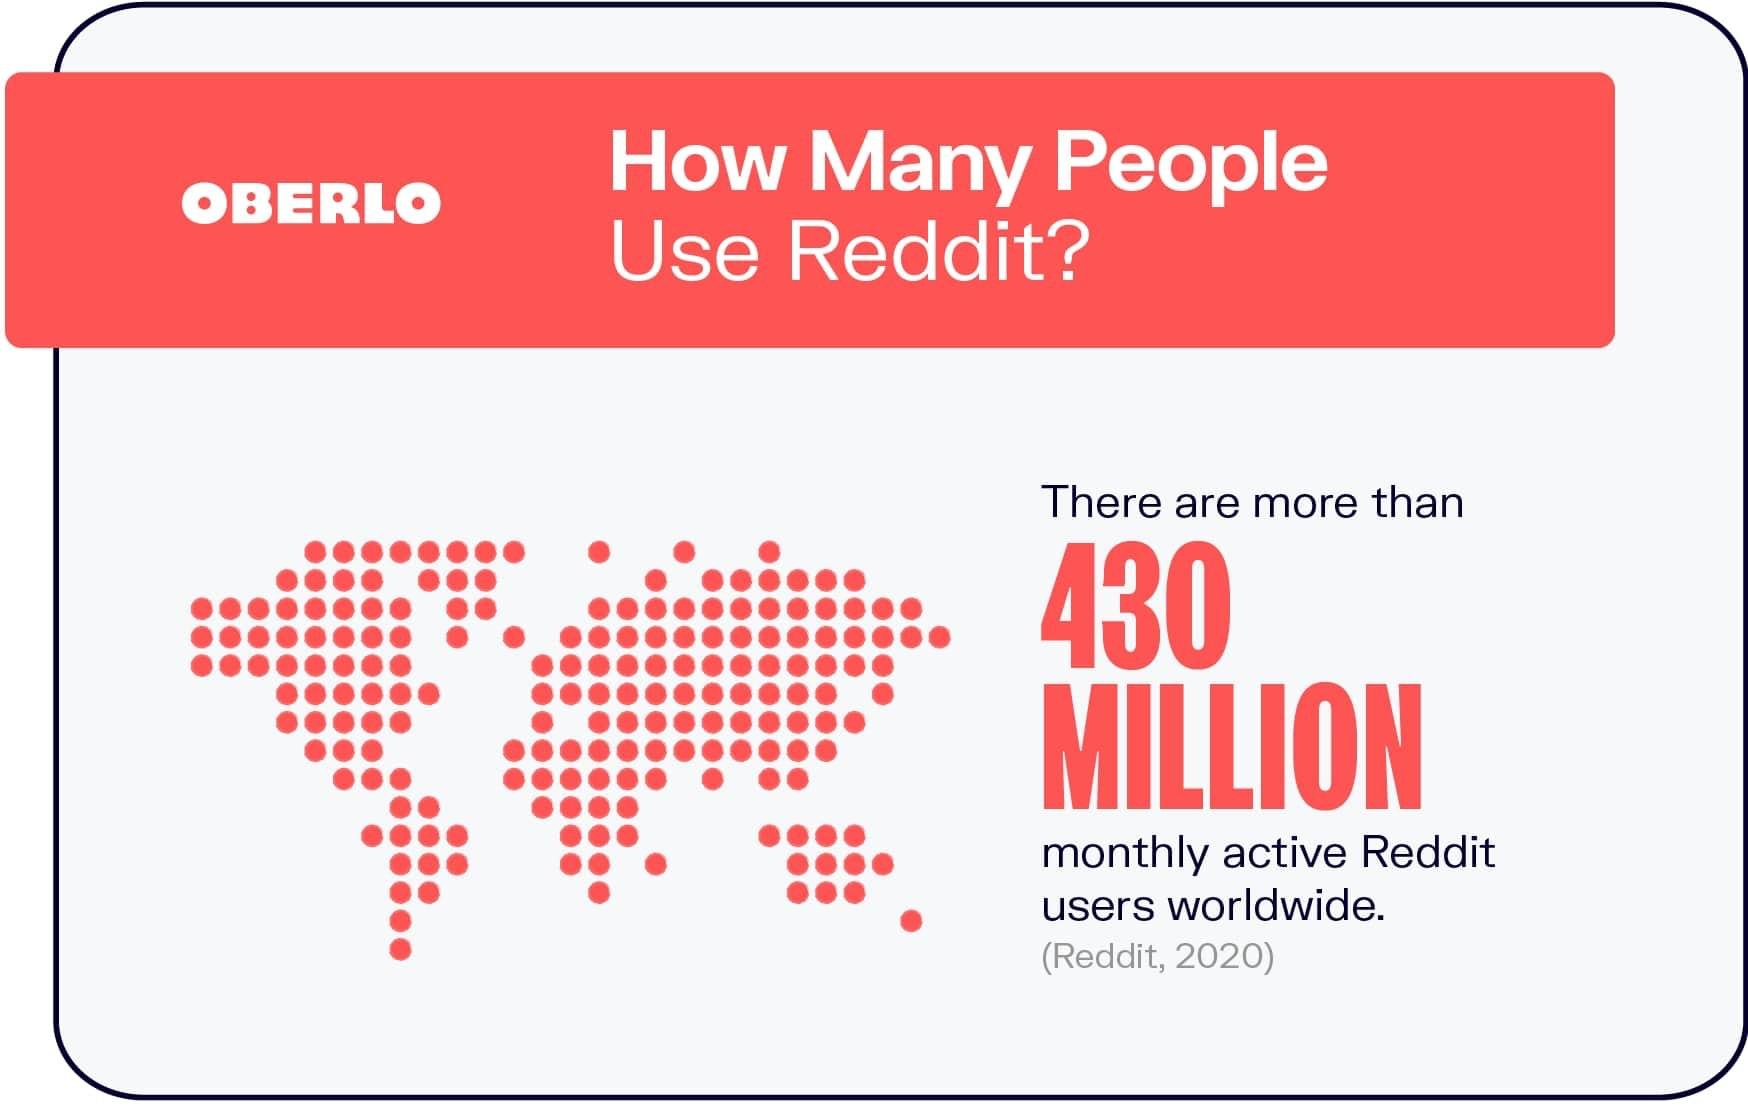 How Many People Use Reddit?